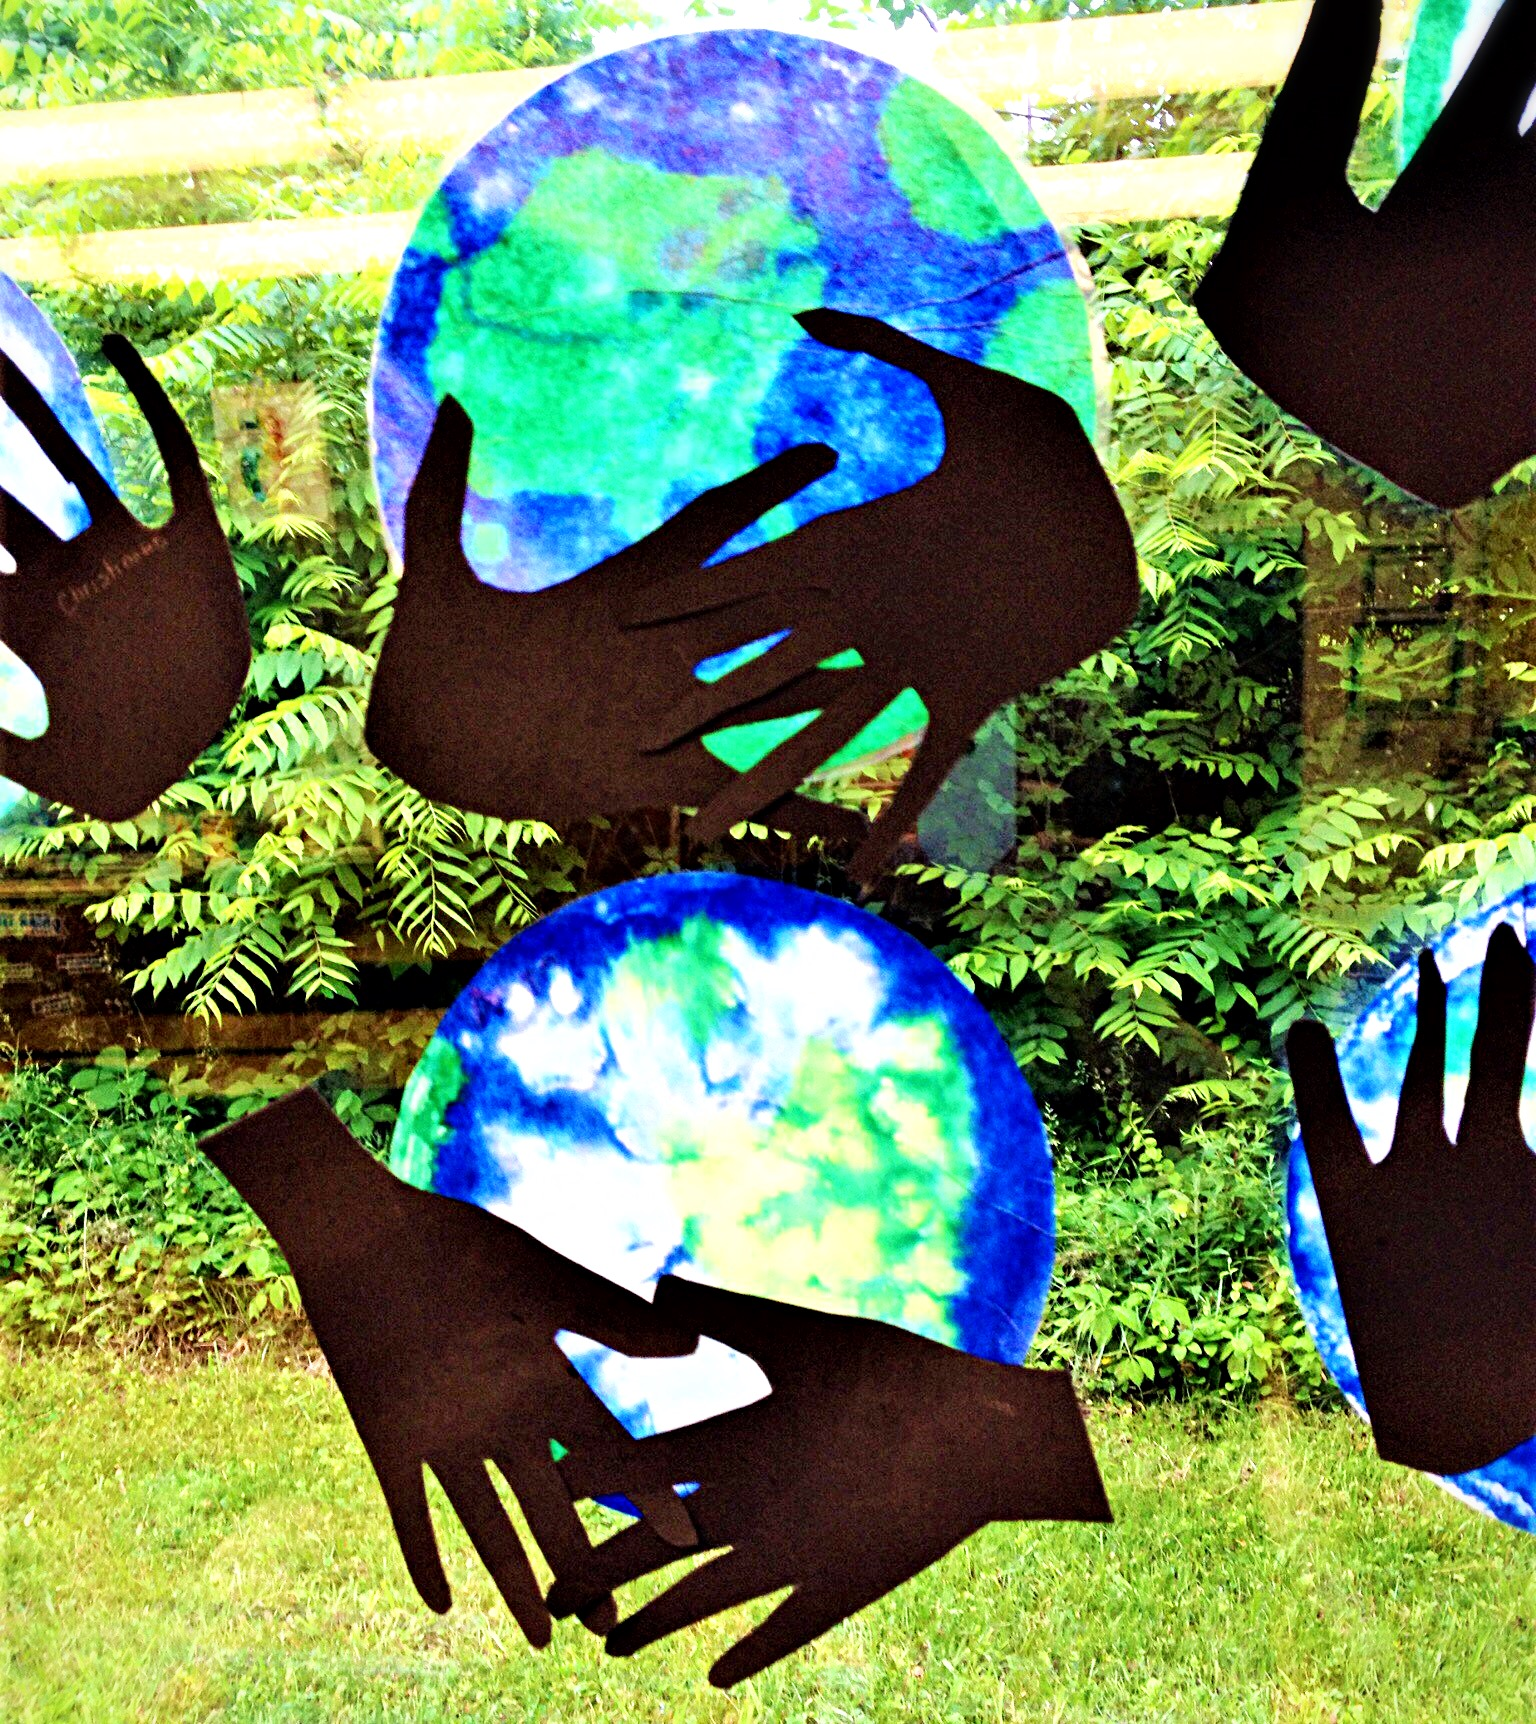 paper cutout hands hold a circle colored blue and green to resemble the Earth